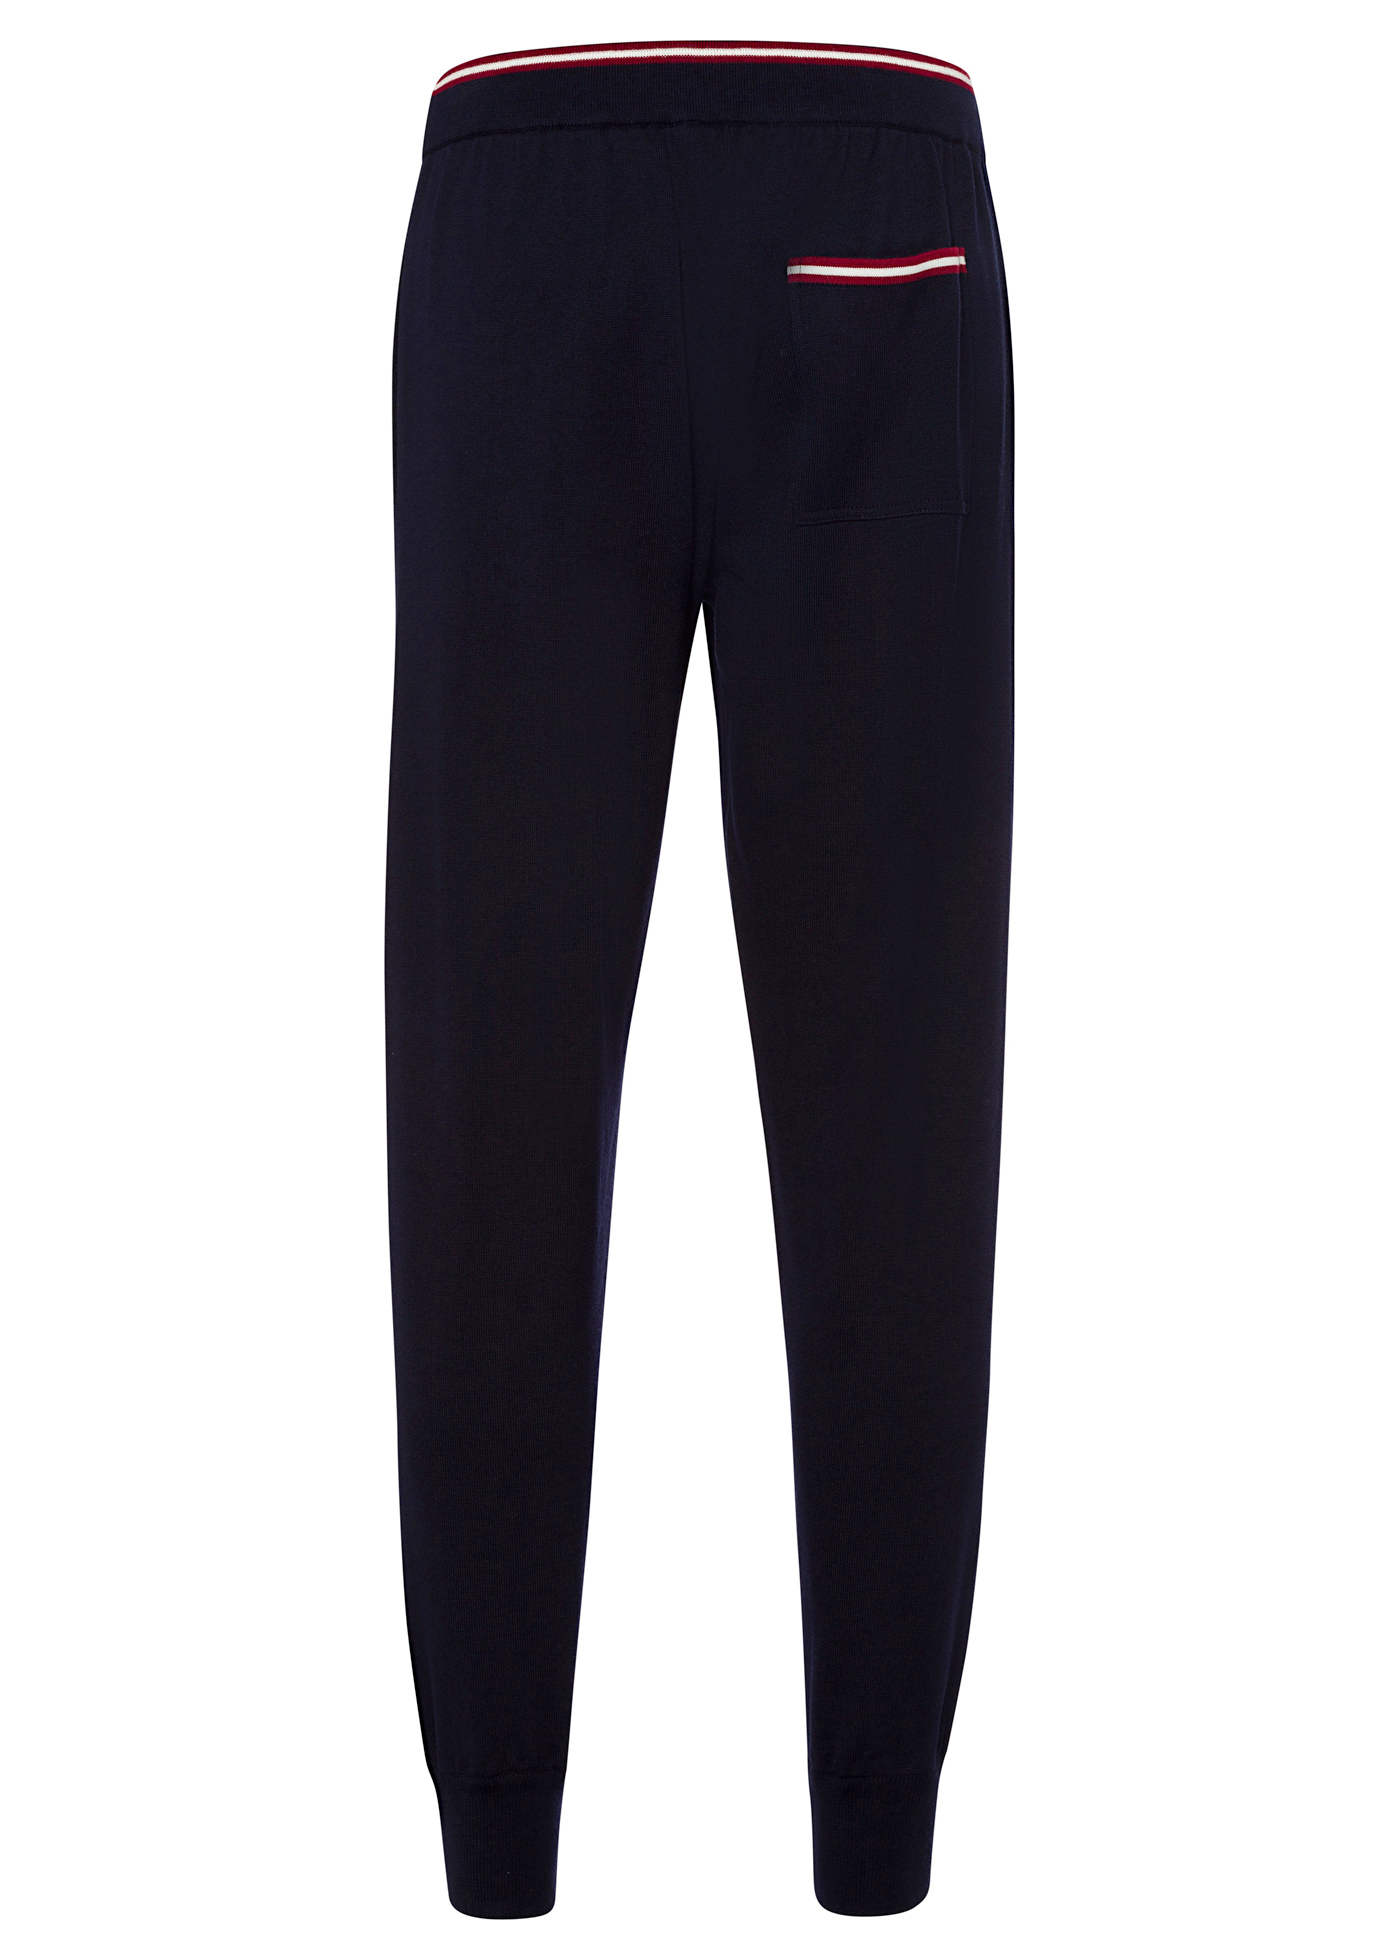 M4LR204K-8S010/750 TROUSERS image number 1